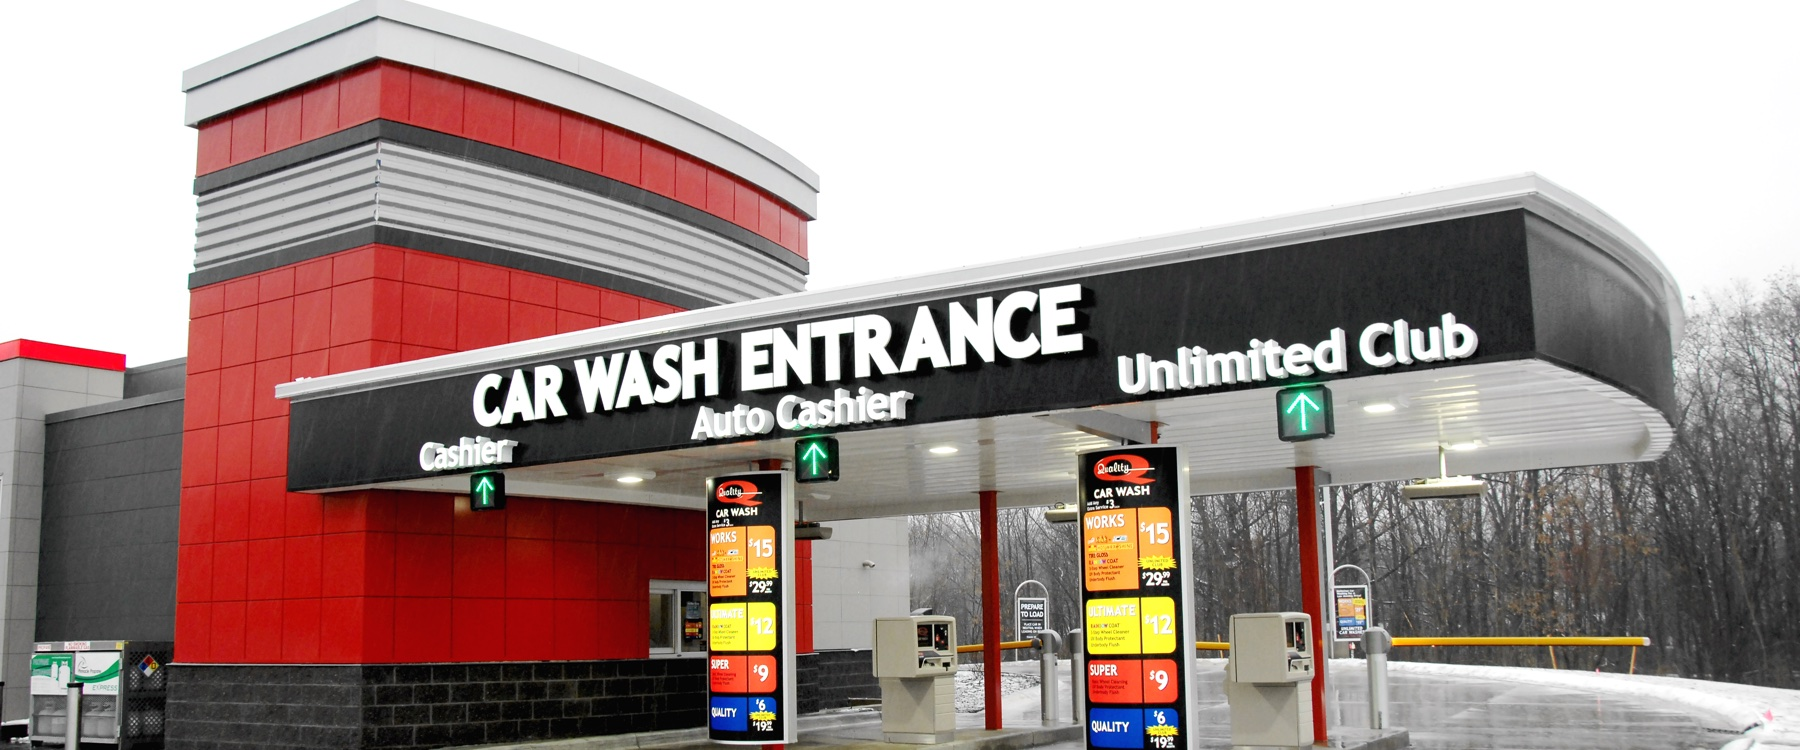 Drive Through Car Wash